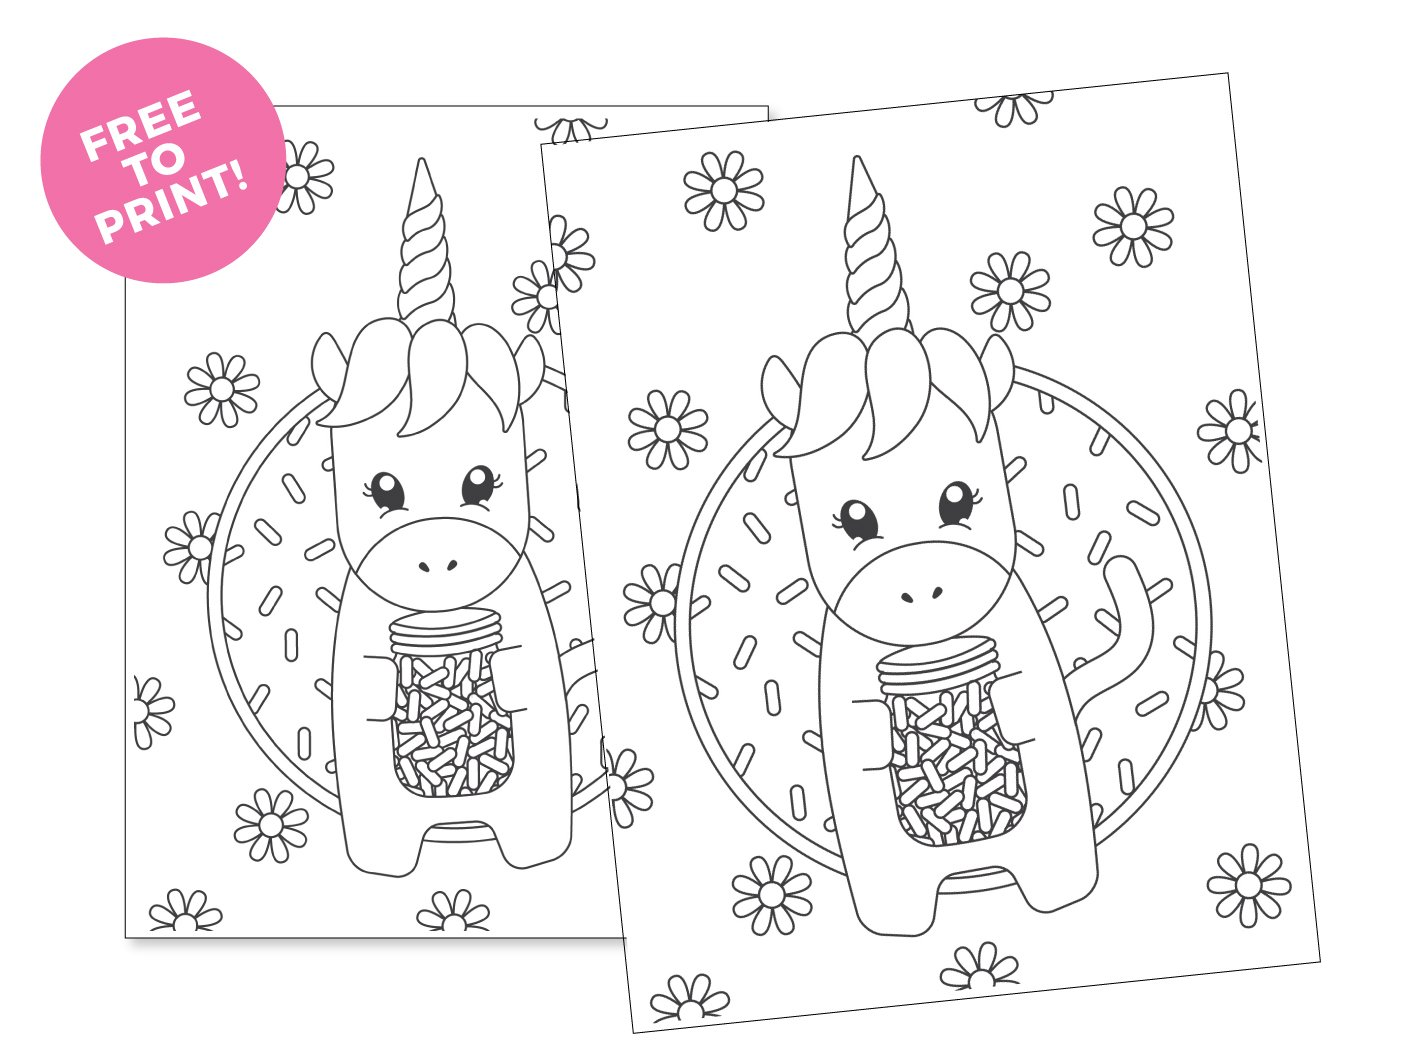 picture regarding Free Printable Unicorn Coloring Pages named Printable Unicorn Coloring Website page - Style and design Consume Repeat